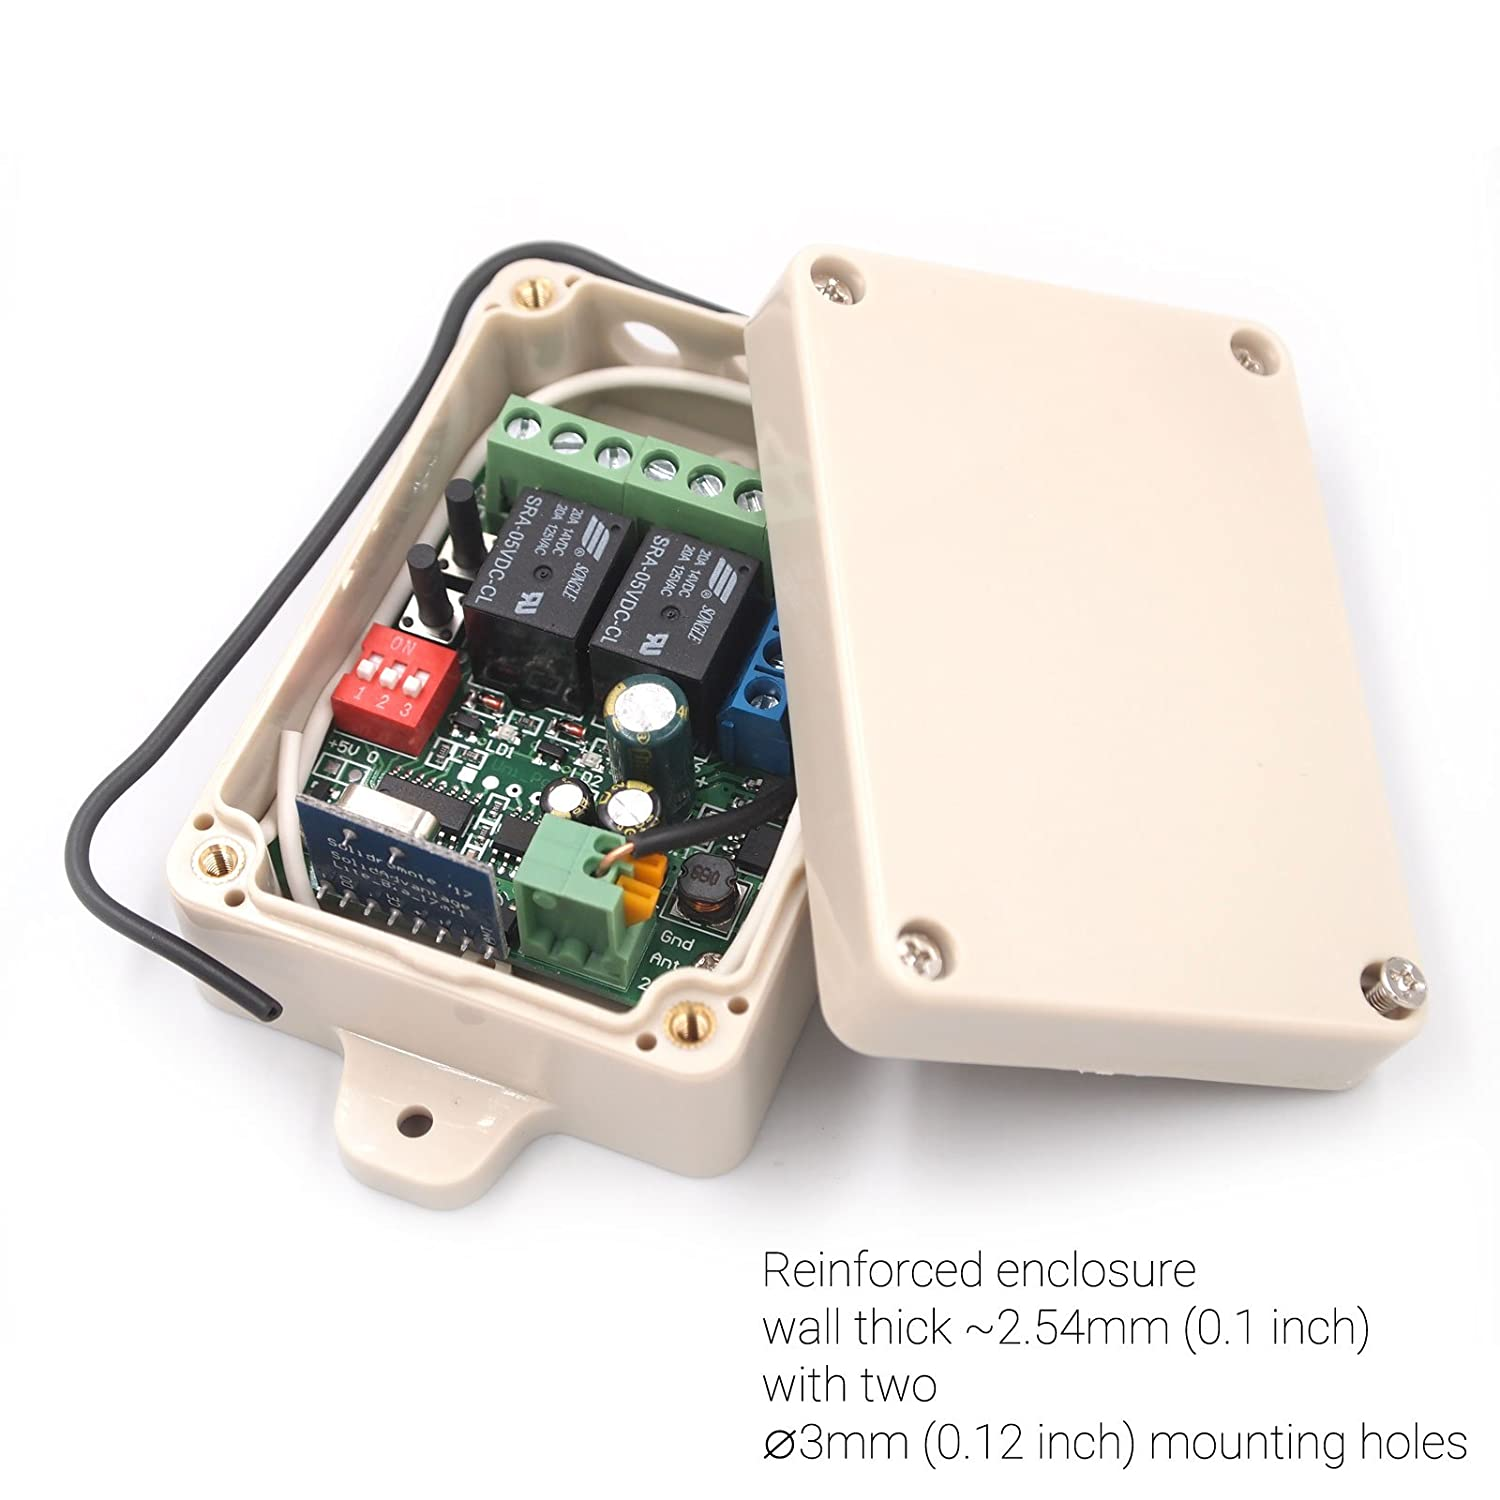 Solidremote 12v 24v Secure Wireless Rf Remote Control Relay Switch Controller Using A Dpdt Tech And Code Universal 2 Channel 433mhz Receiver With Fcc Id Transmitters For Garage Door Openers